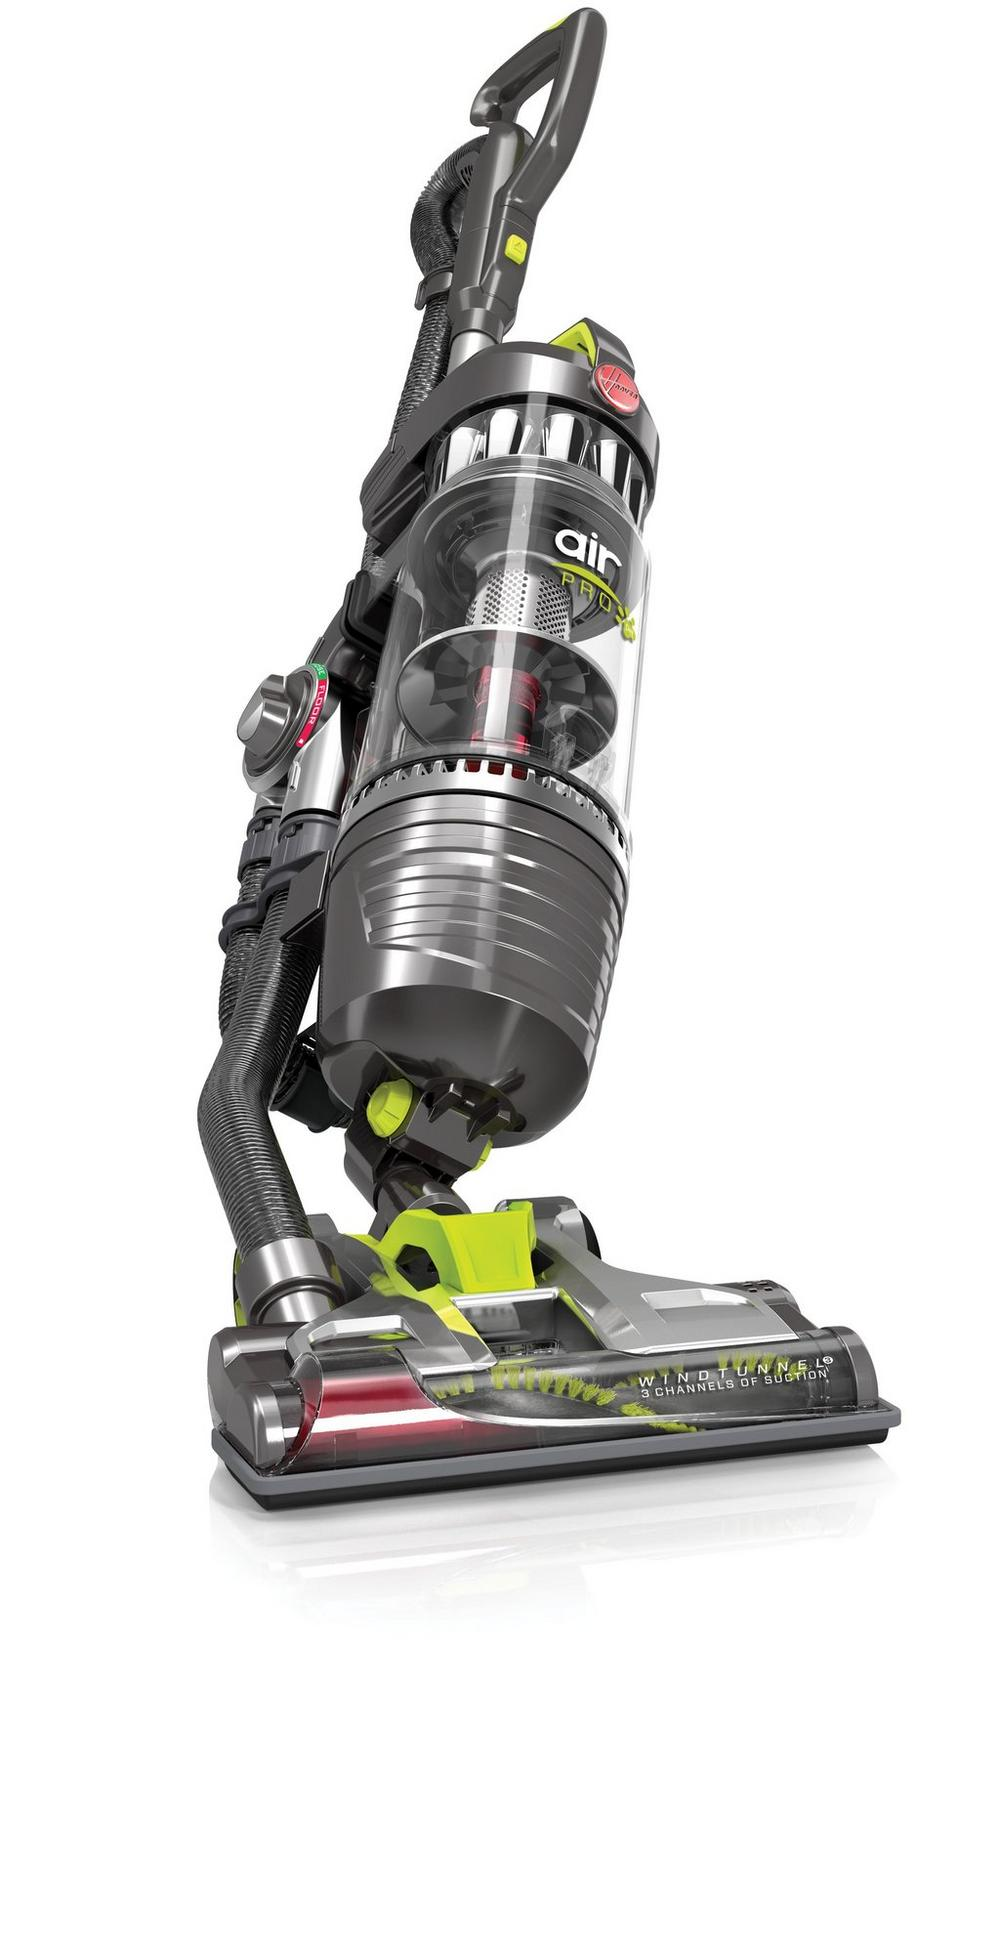 WindTunnel Air Pro Upright Vacuum2